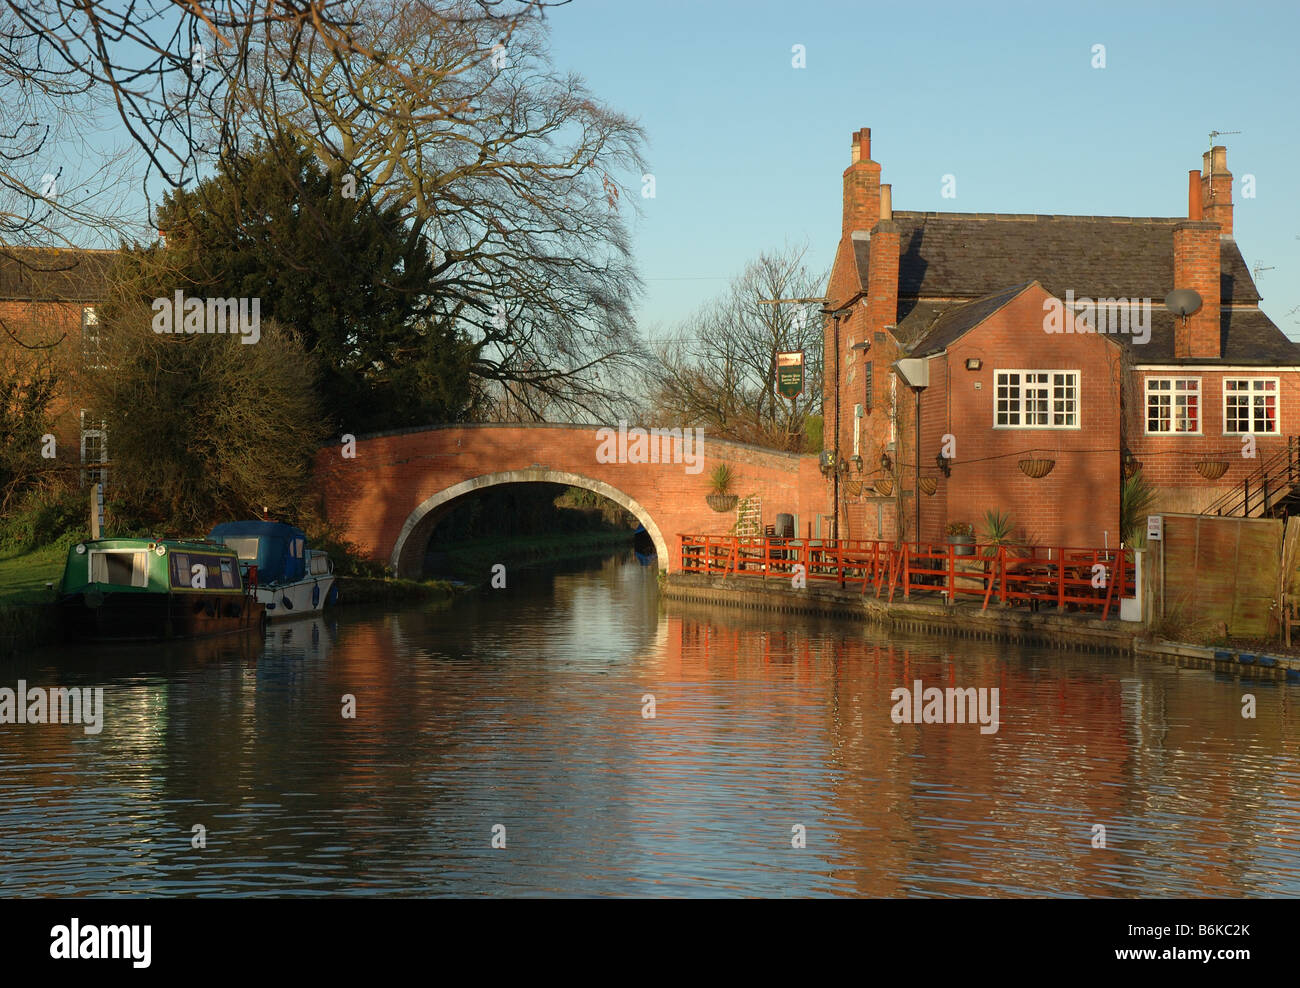 the Navigation Inn, Barrow upon Soar, Leicestershire, England, UK - Stock Image